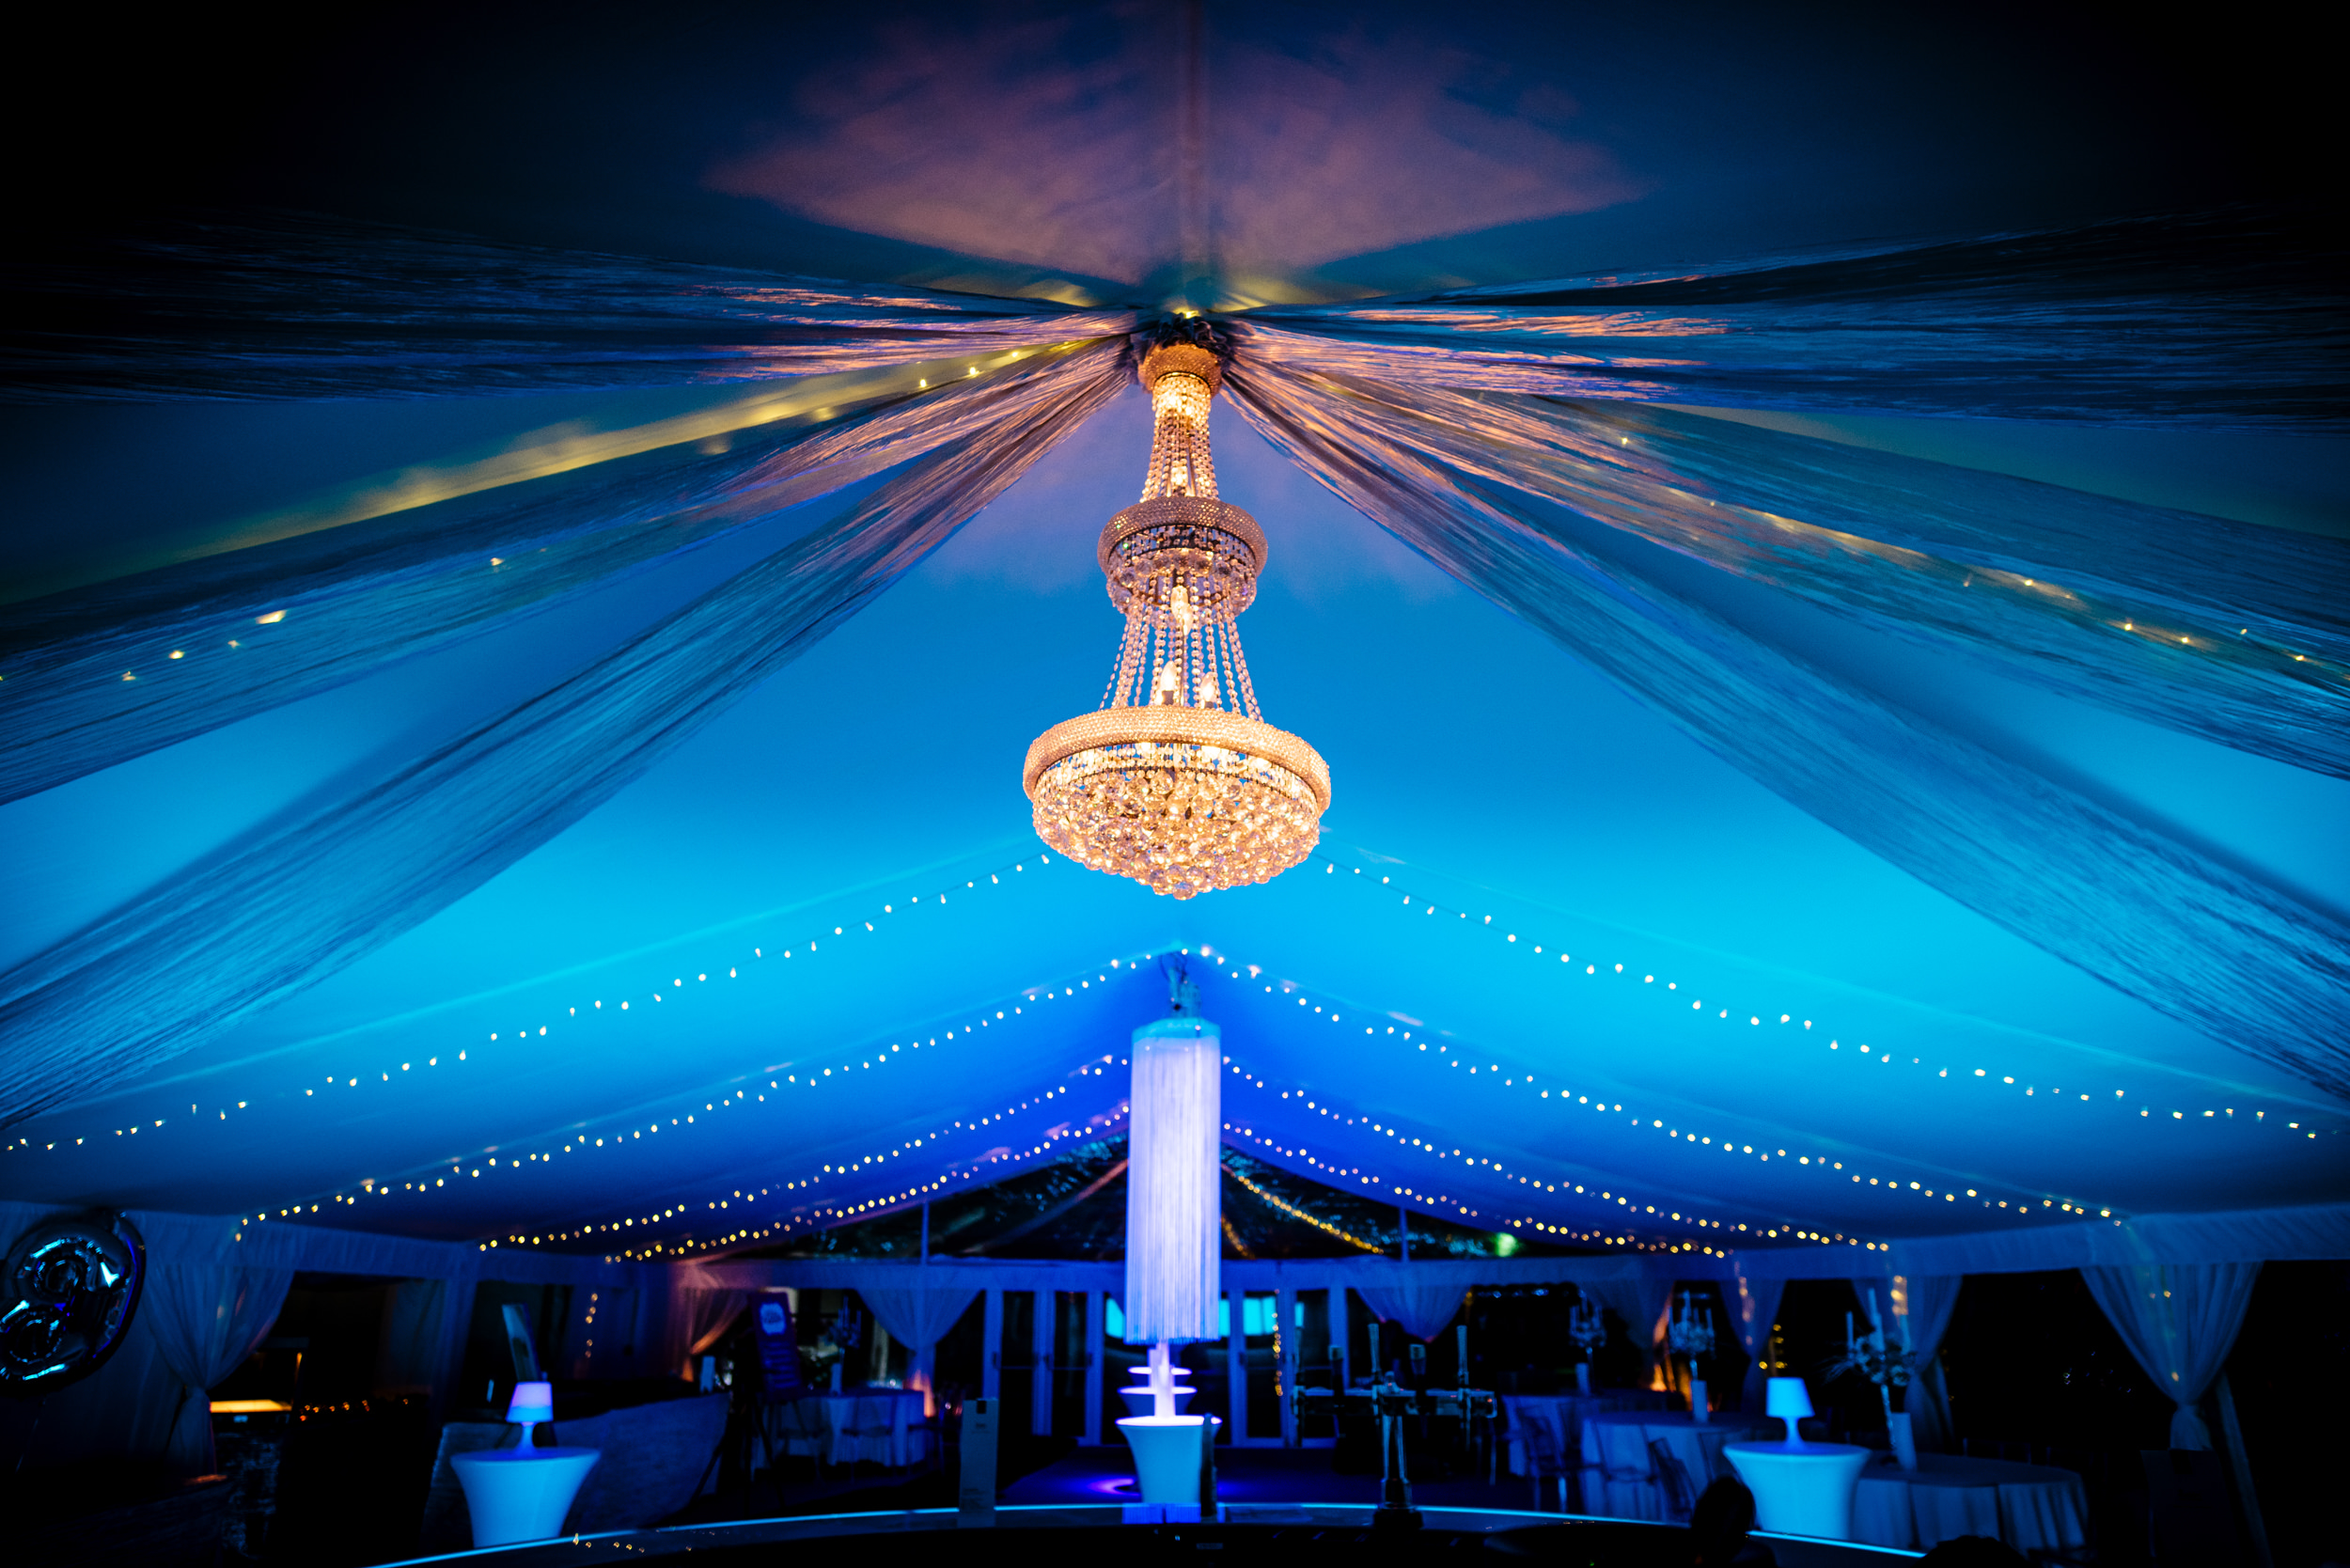 Atmospherically lit blue evening interior of a Few's Marquee